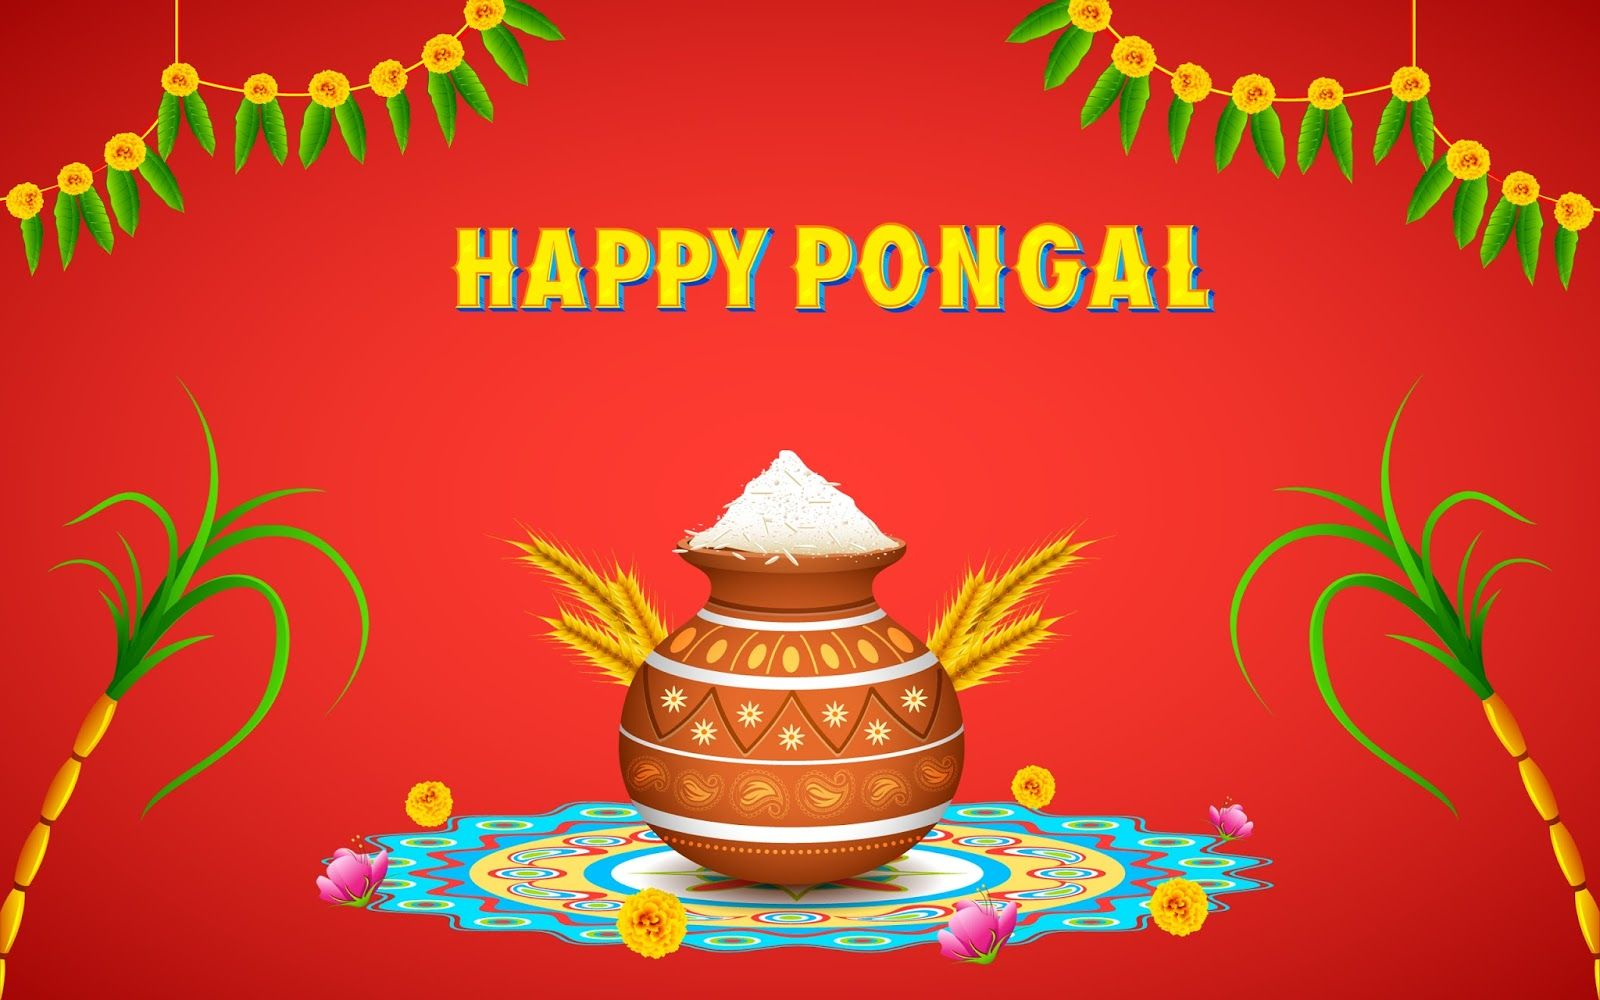 Newhappy pongal images 2017 greeting cards wishes happy pongal newhappy pongal images 2017 greeting cards wishes happy pongal images 2017 sankranti wishes greetings m4hsunfo